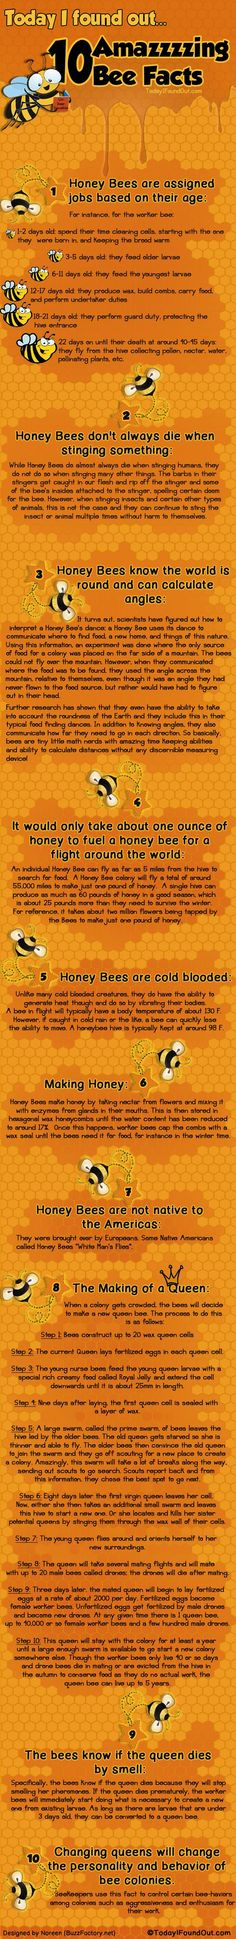 10 Amazzzzing Bee Facts